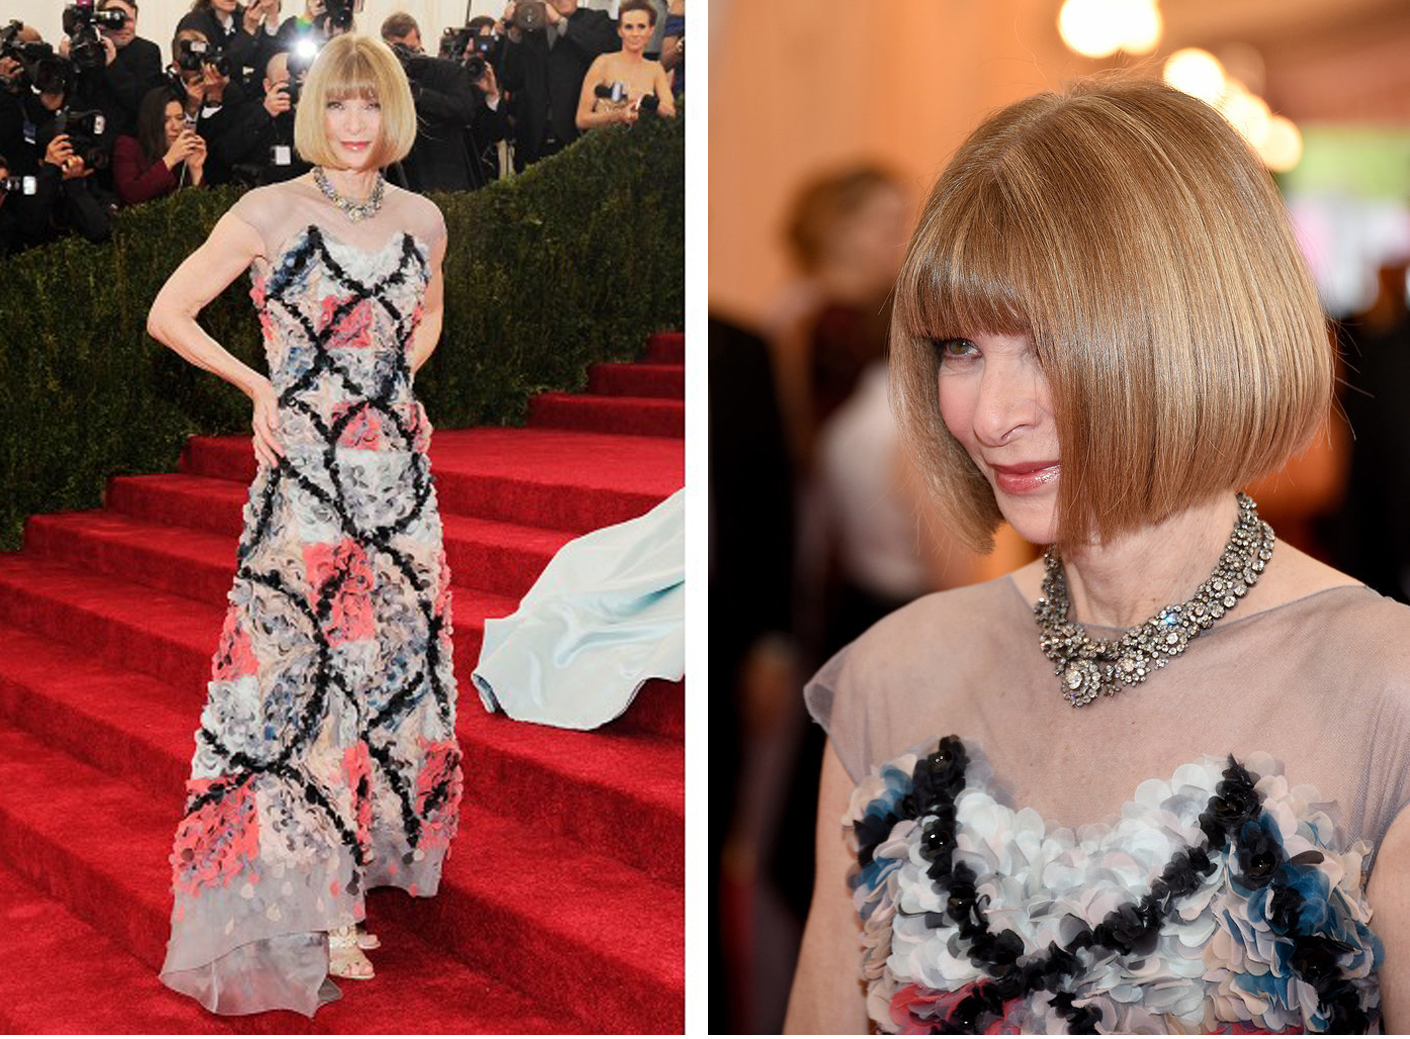 Anna Wintour in a Chanel Couture dress and a diamond floral necklace, circa 19th century.